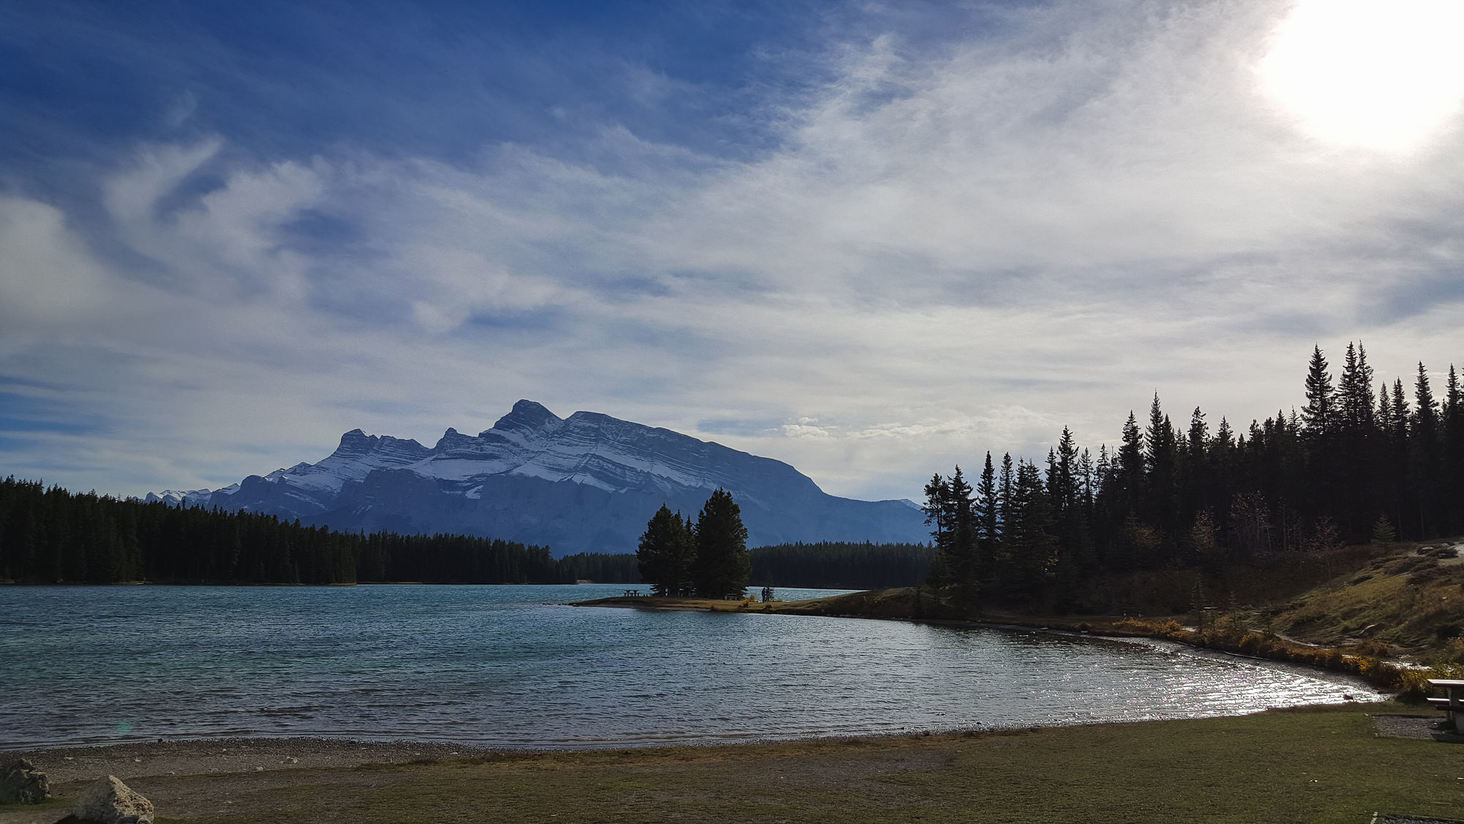 samsung galaxy s6 camera Canada Banff